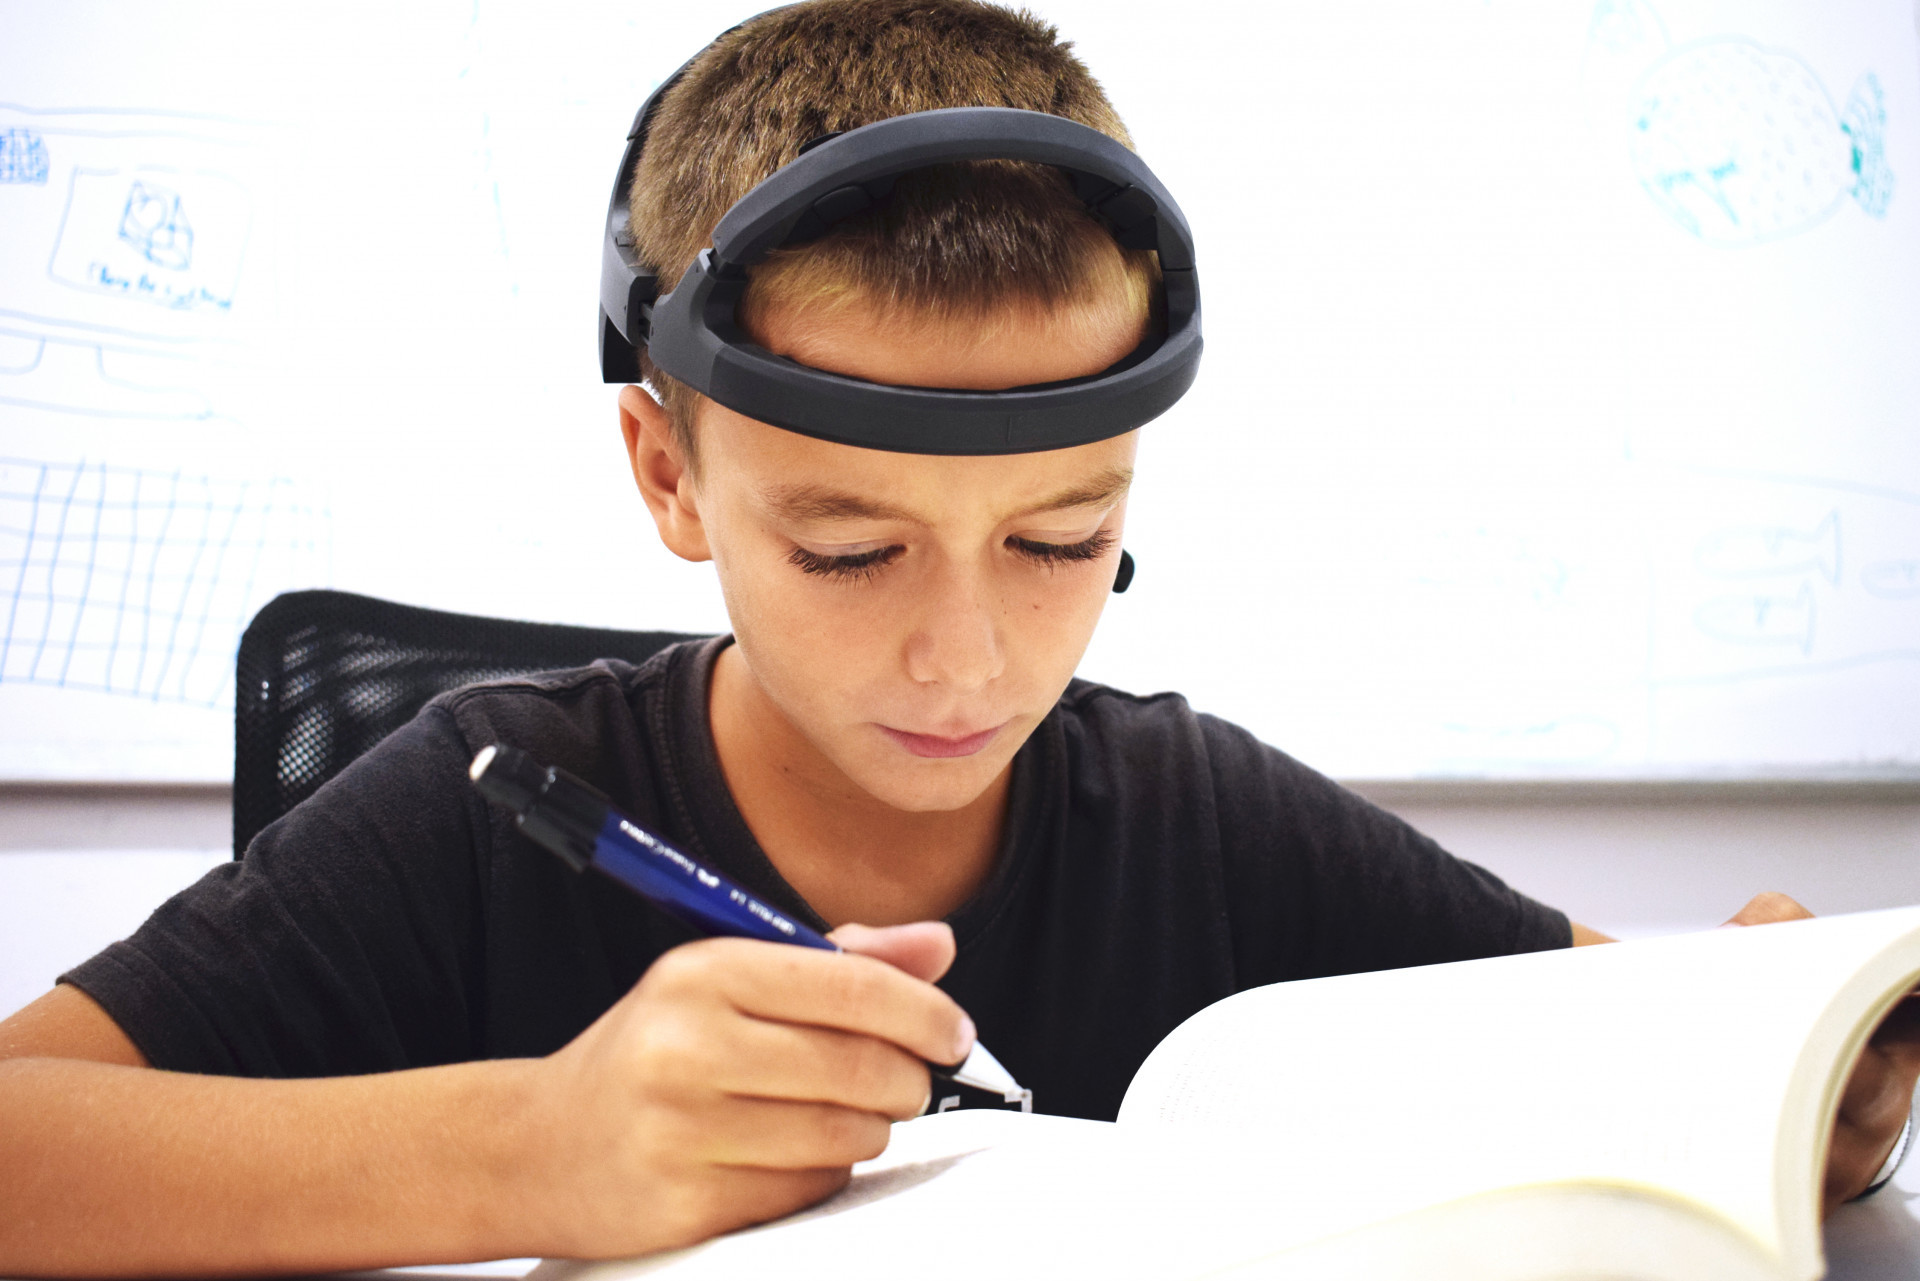 EEG test for education research